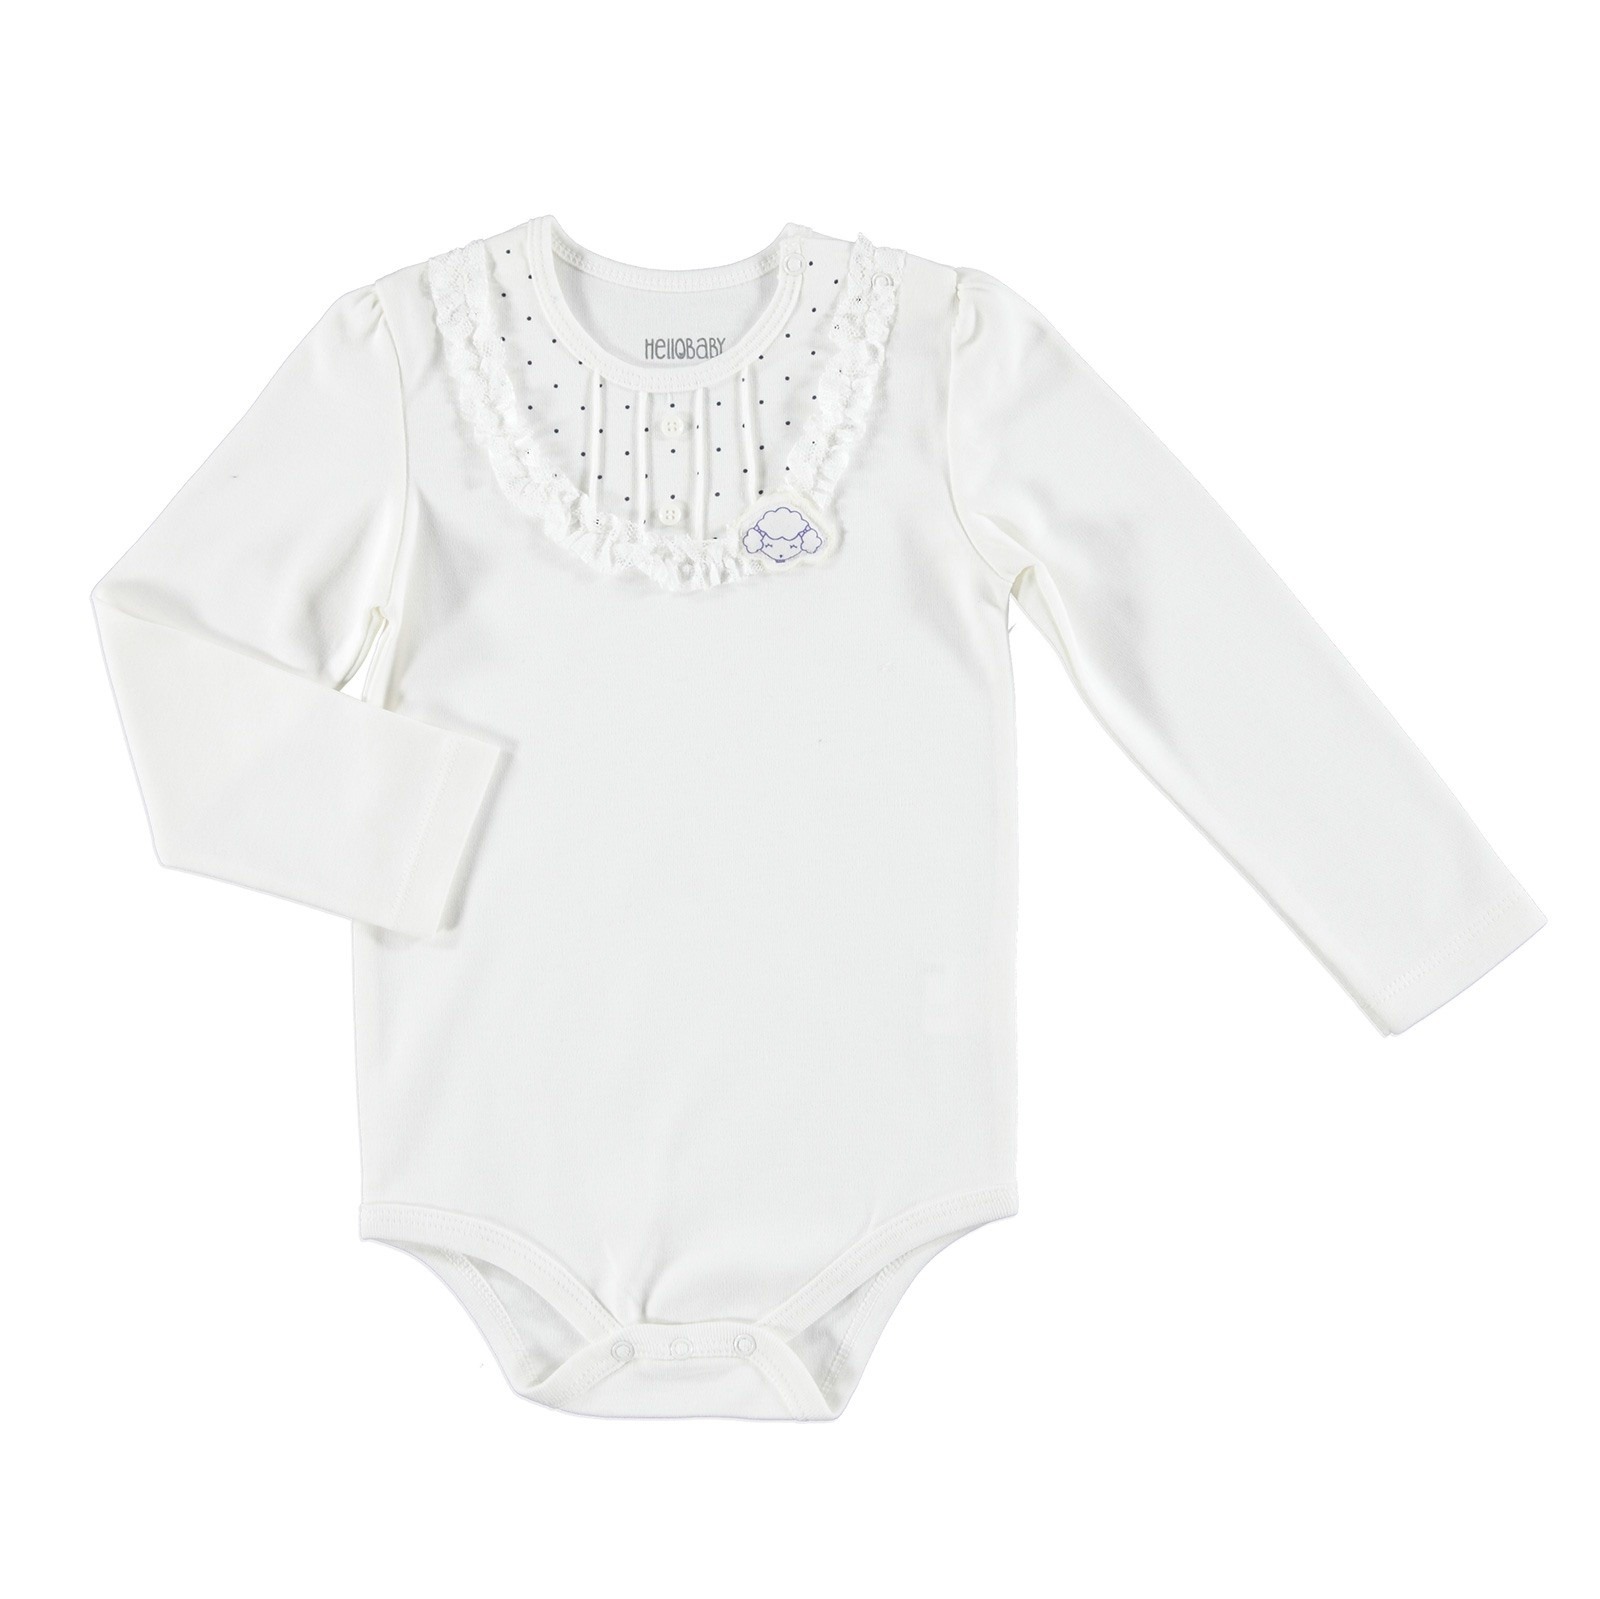 Ebebek HelloBaby Chic Sheep Baby Long Sleeve Bodysuit